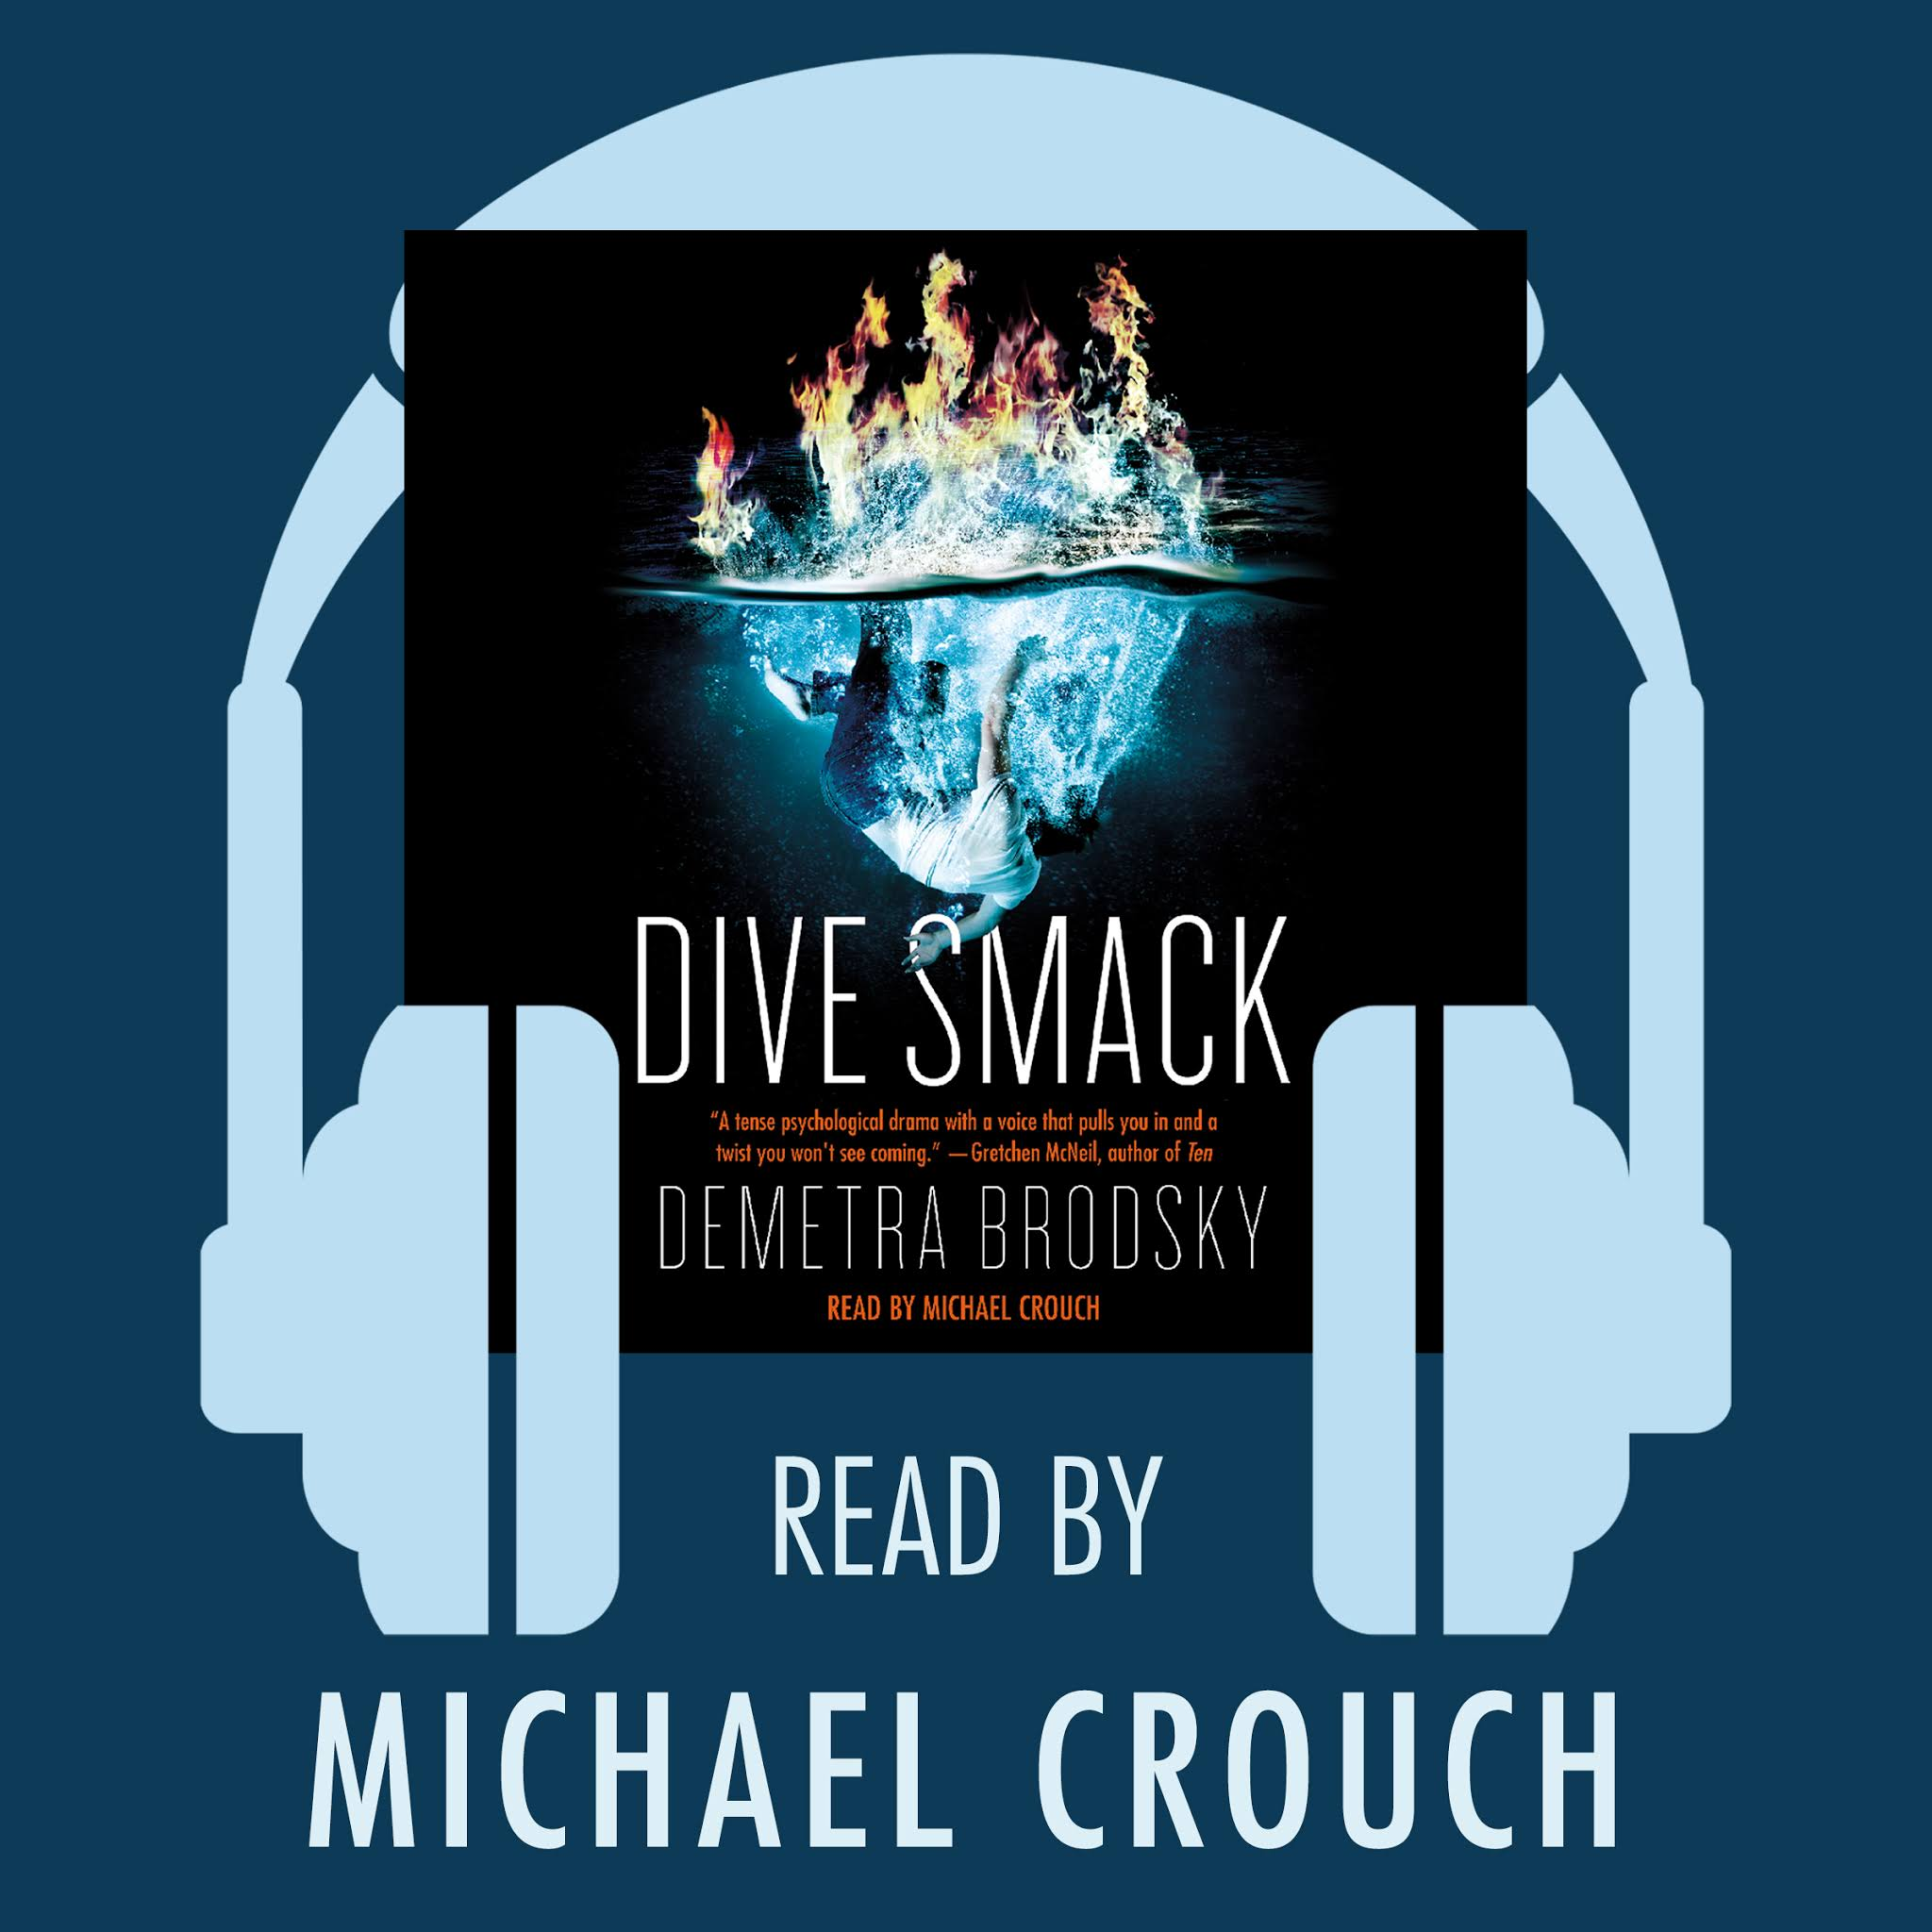 DIVE SMACK audiobook - Narrated by Michael Crouch.Michael Crouch is an Audie Award-winning actor based in New York City. His audiobook narration has earned multiple Earphones Awards from Audiofile Magazine and Best of the Year listings from Booklist, School Library Journal, and Publishers Weekly. NYT bestselling and award-winning authors include Rick Riordan, James Patterson, Stephenie Meyer, Madeleine L'Engle, Becky Albertelli, and Louis L'Amour. He can also be heard on national commercials, cartoons, video games, and the animé series Pokémon XY and Yu-Gi-Oh! Arc-V.